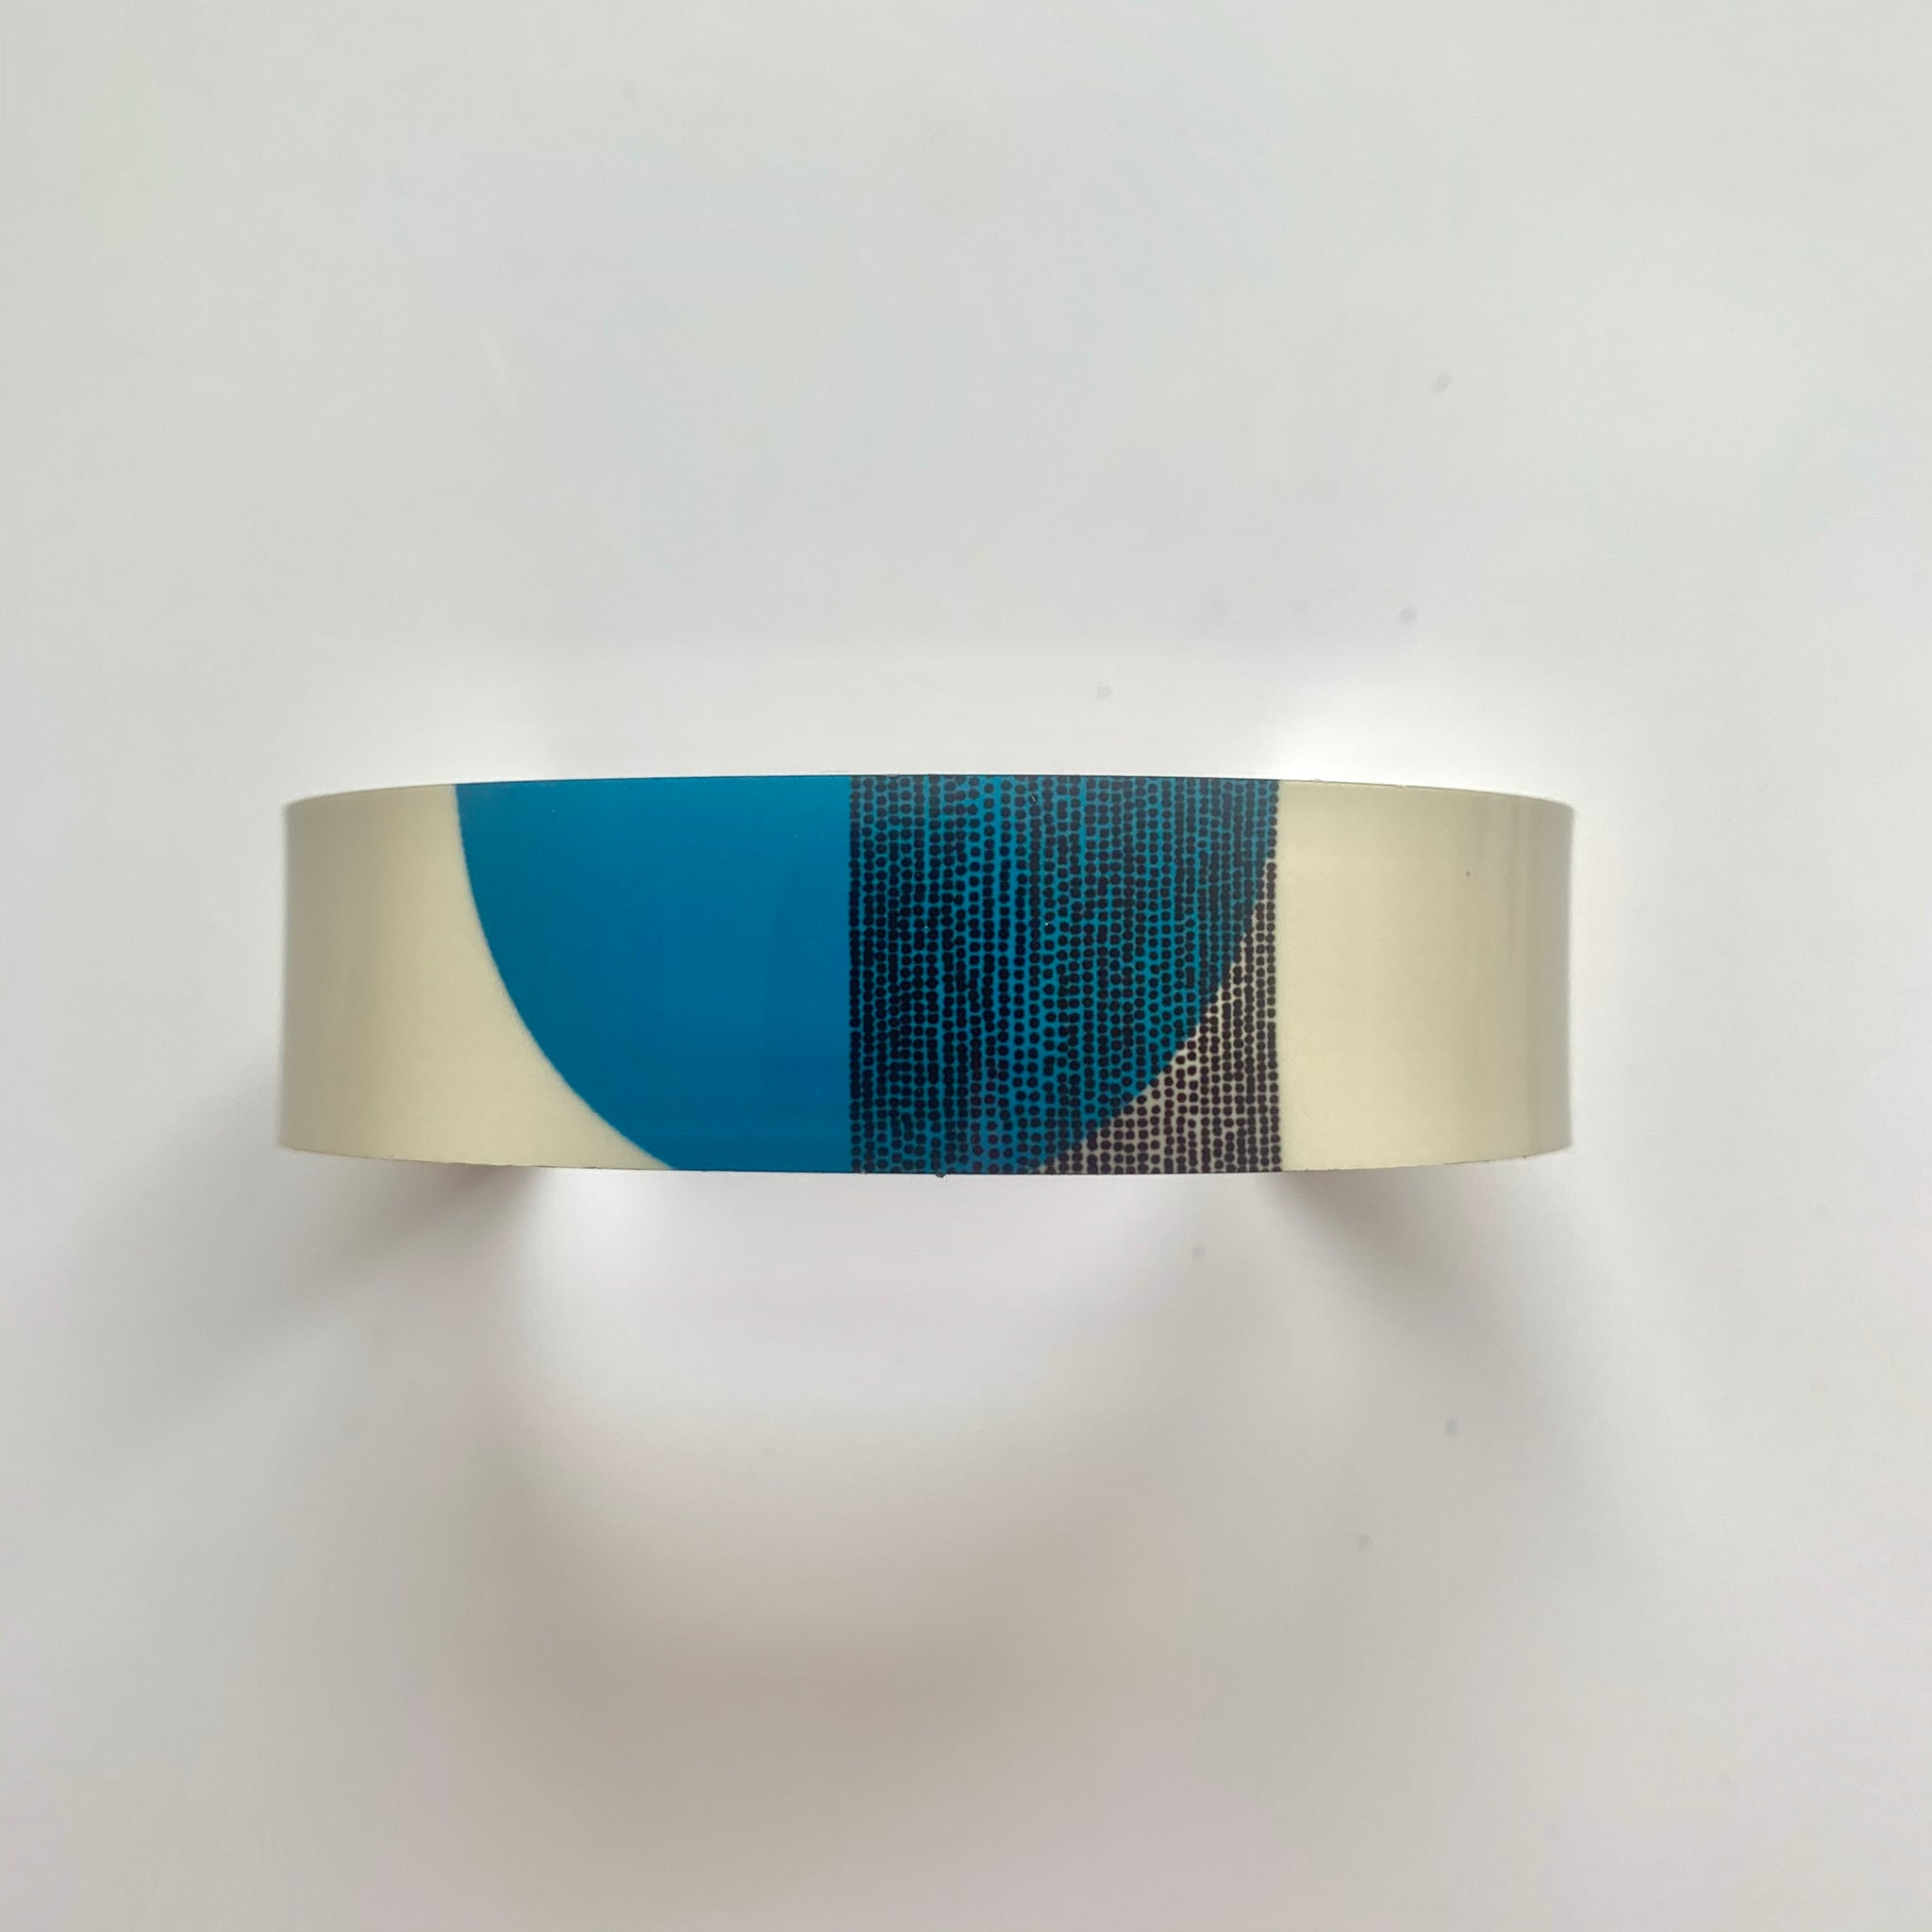 Balance Narrow Cuff Bracelet - Teal Arc (New)